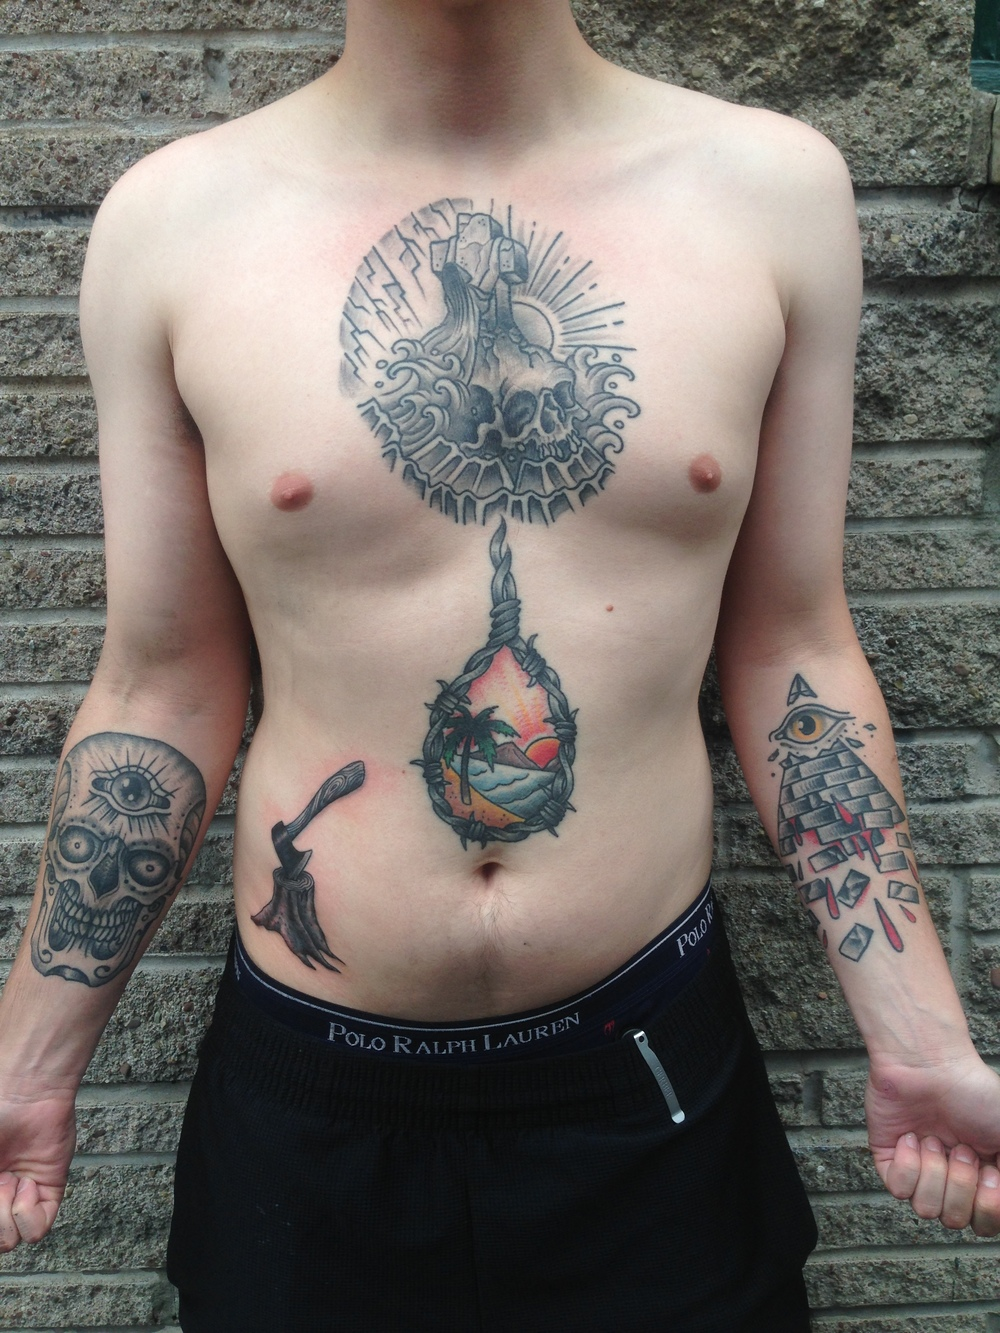 matt-lucci-tattoo-chest-piece-noose.JPG